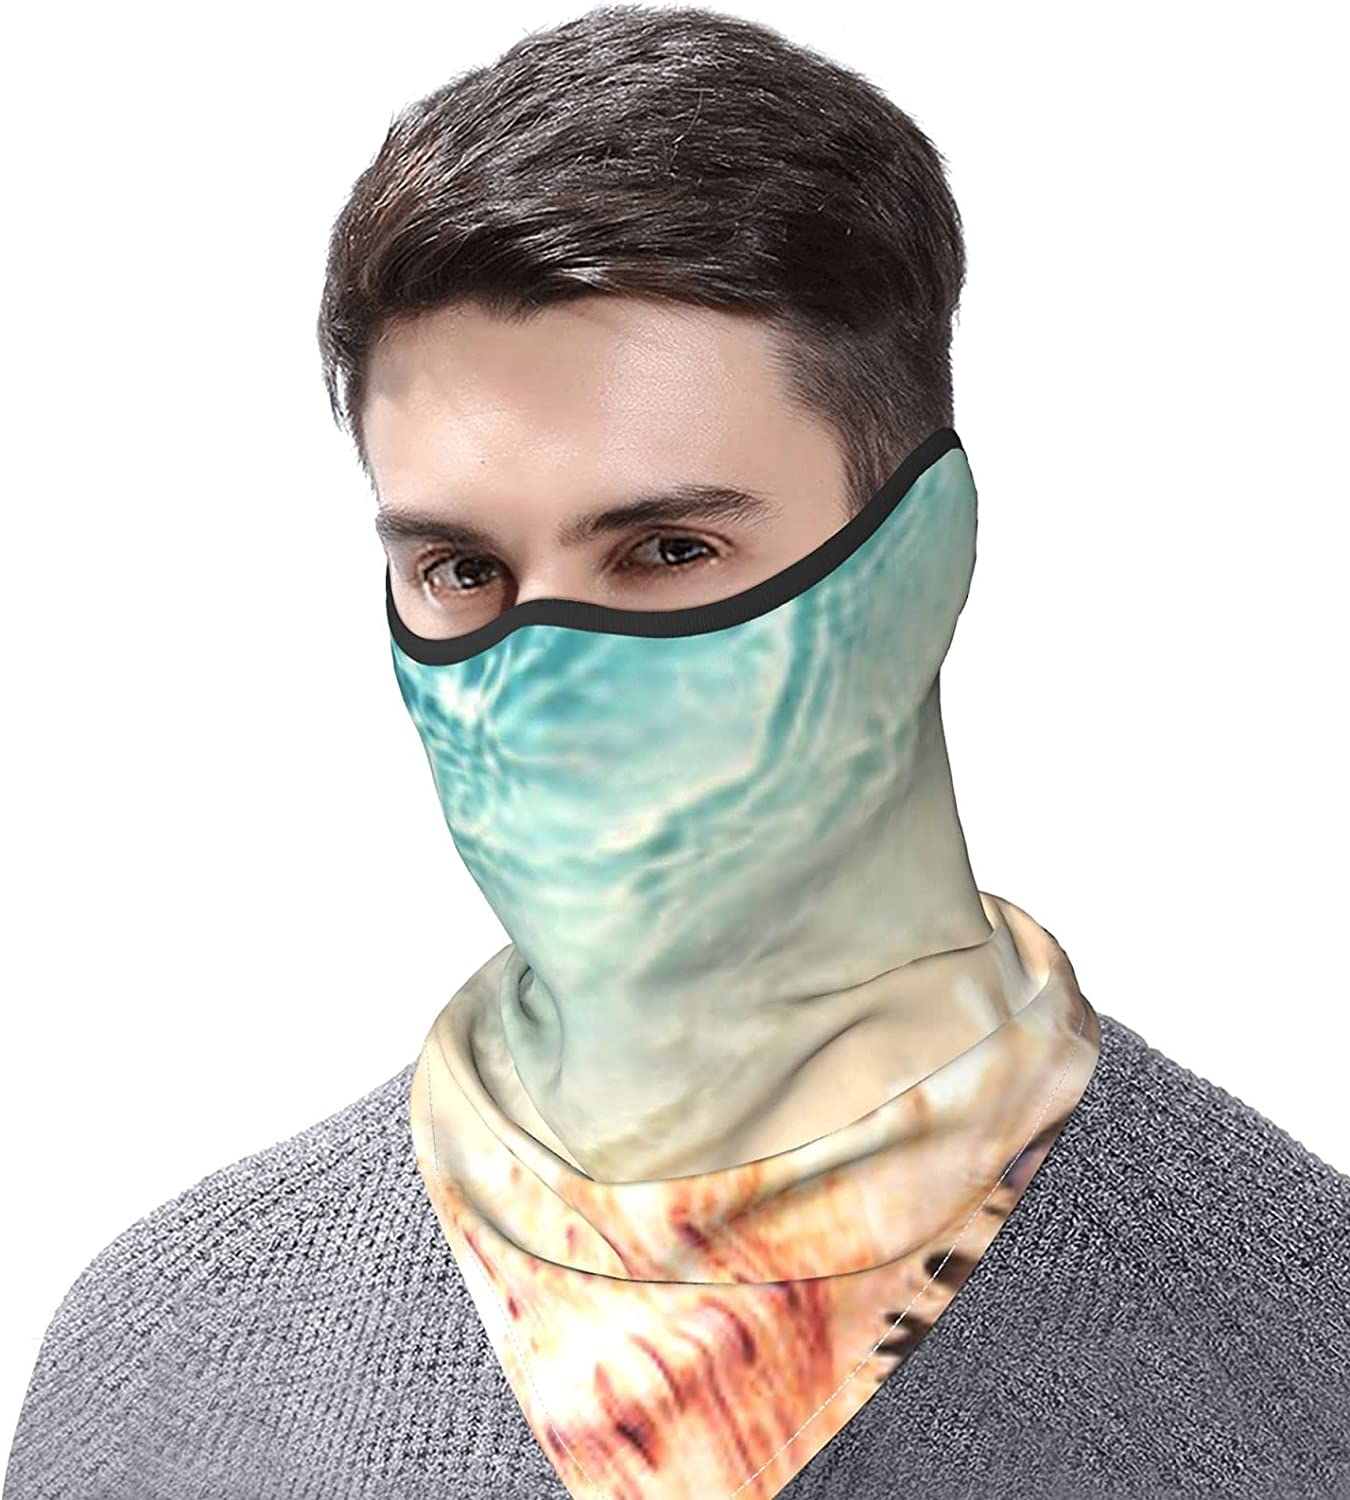 Sea Shells on Blue Wooden and Sand Breathable Bandana Face Mask Neck Gaiter Windproof Sports Mask Scarf Headwear for Men Women Outdoor Hiking Cycling Running Motorcycling